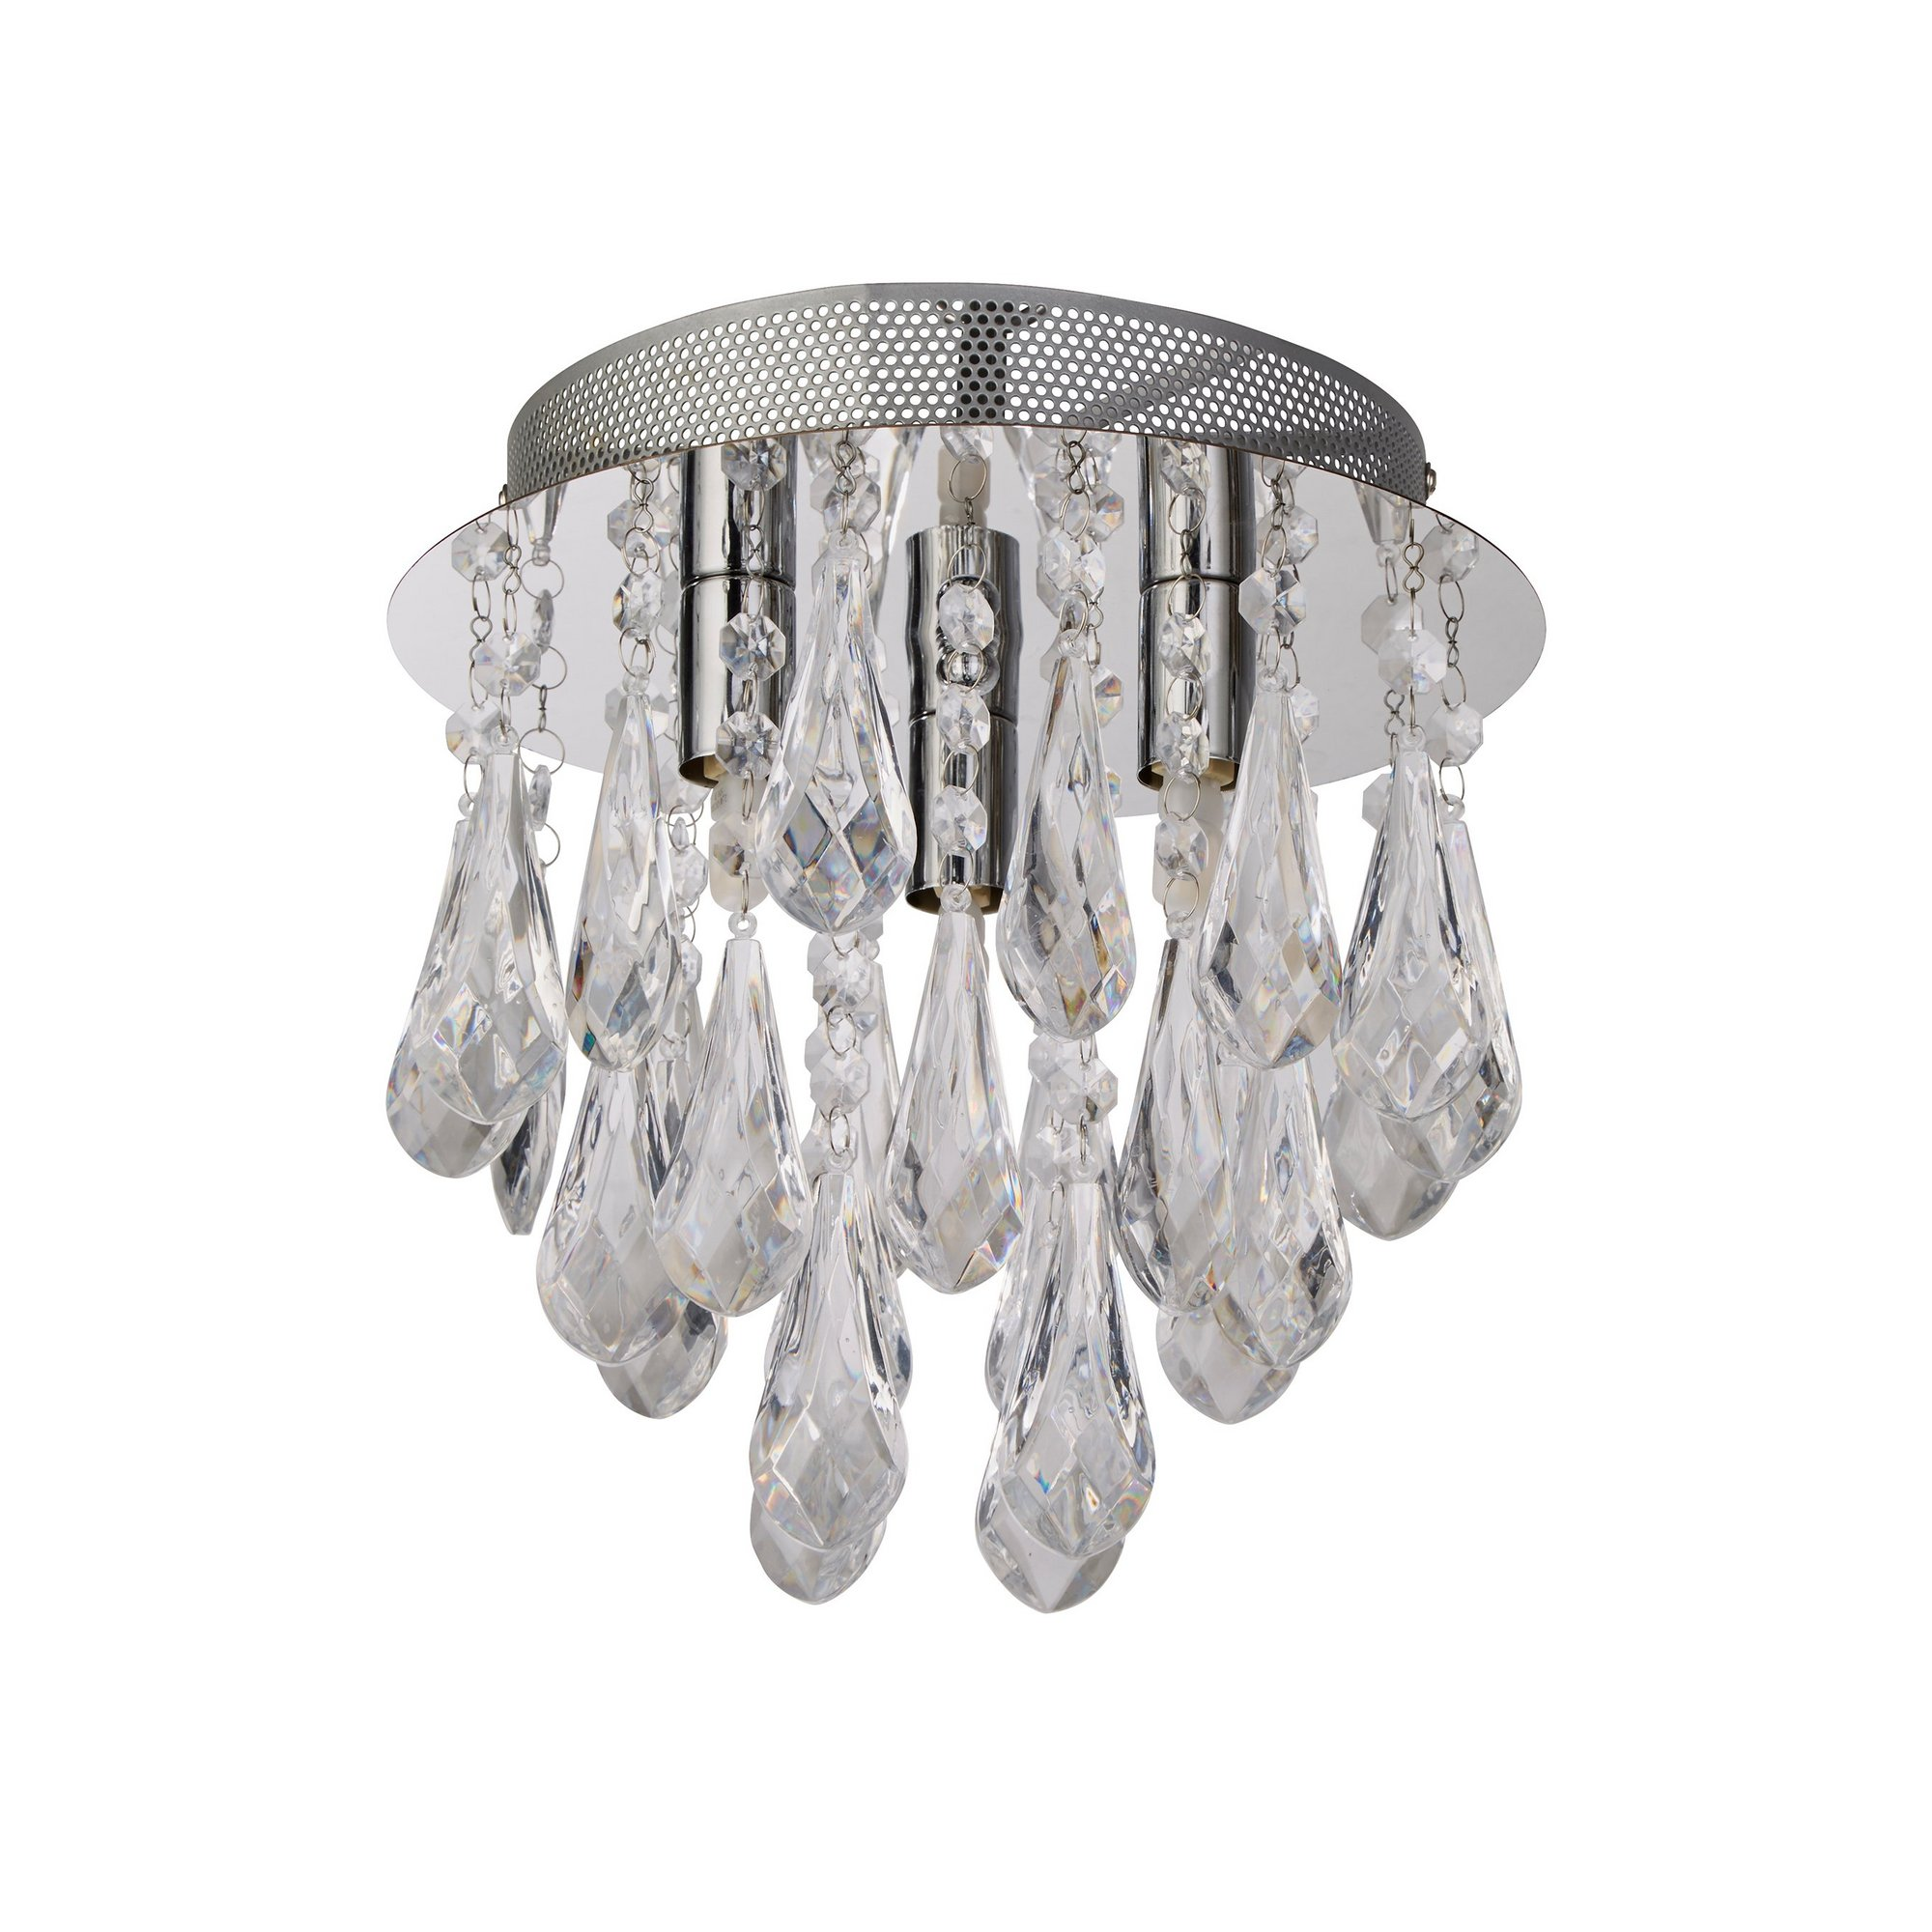 Image of 3 Light Acrylic Droplet Ceiling Light